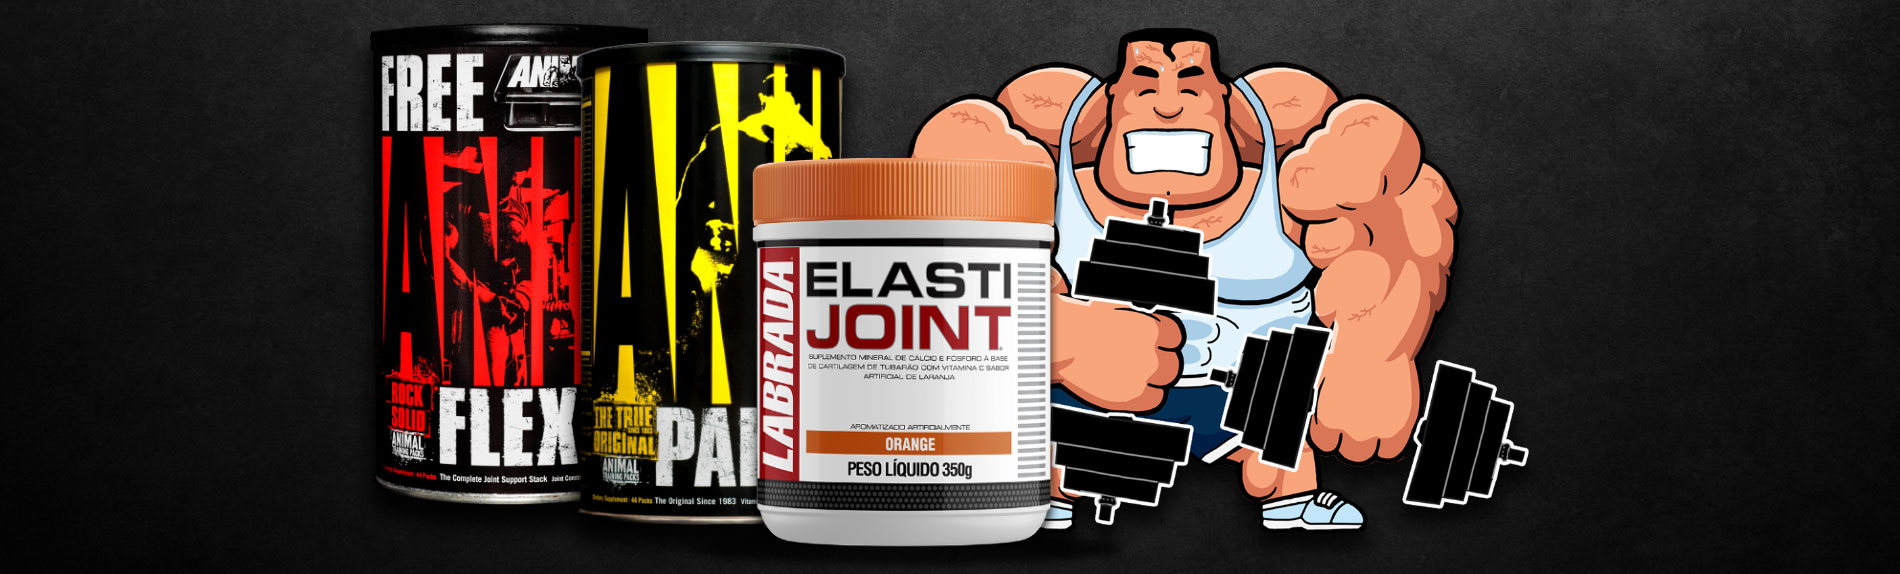 Elasti Joint, ANIMAL PAK